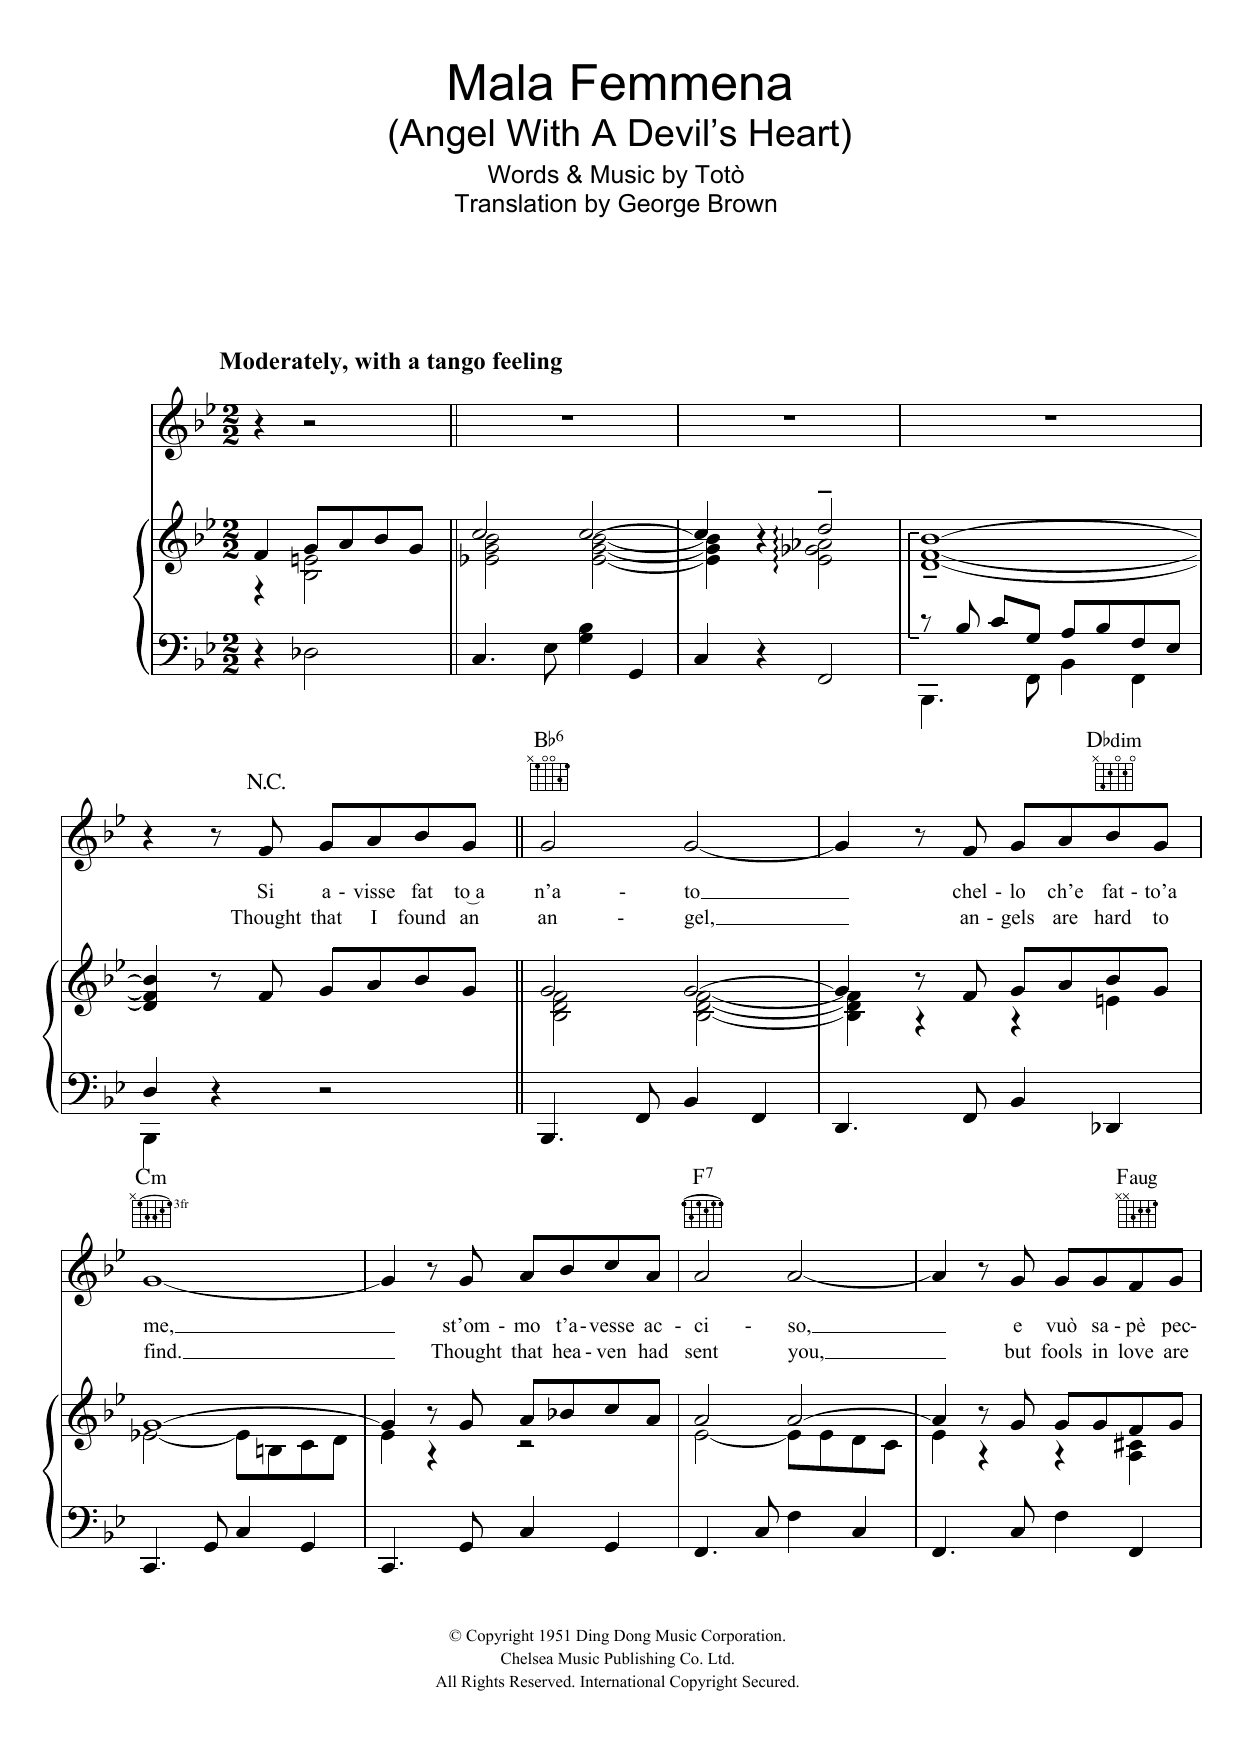 Mala Femmena Sheet Music